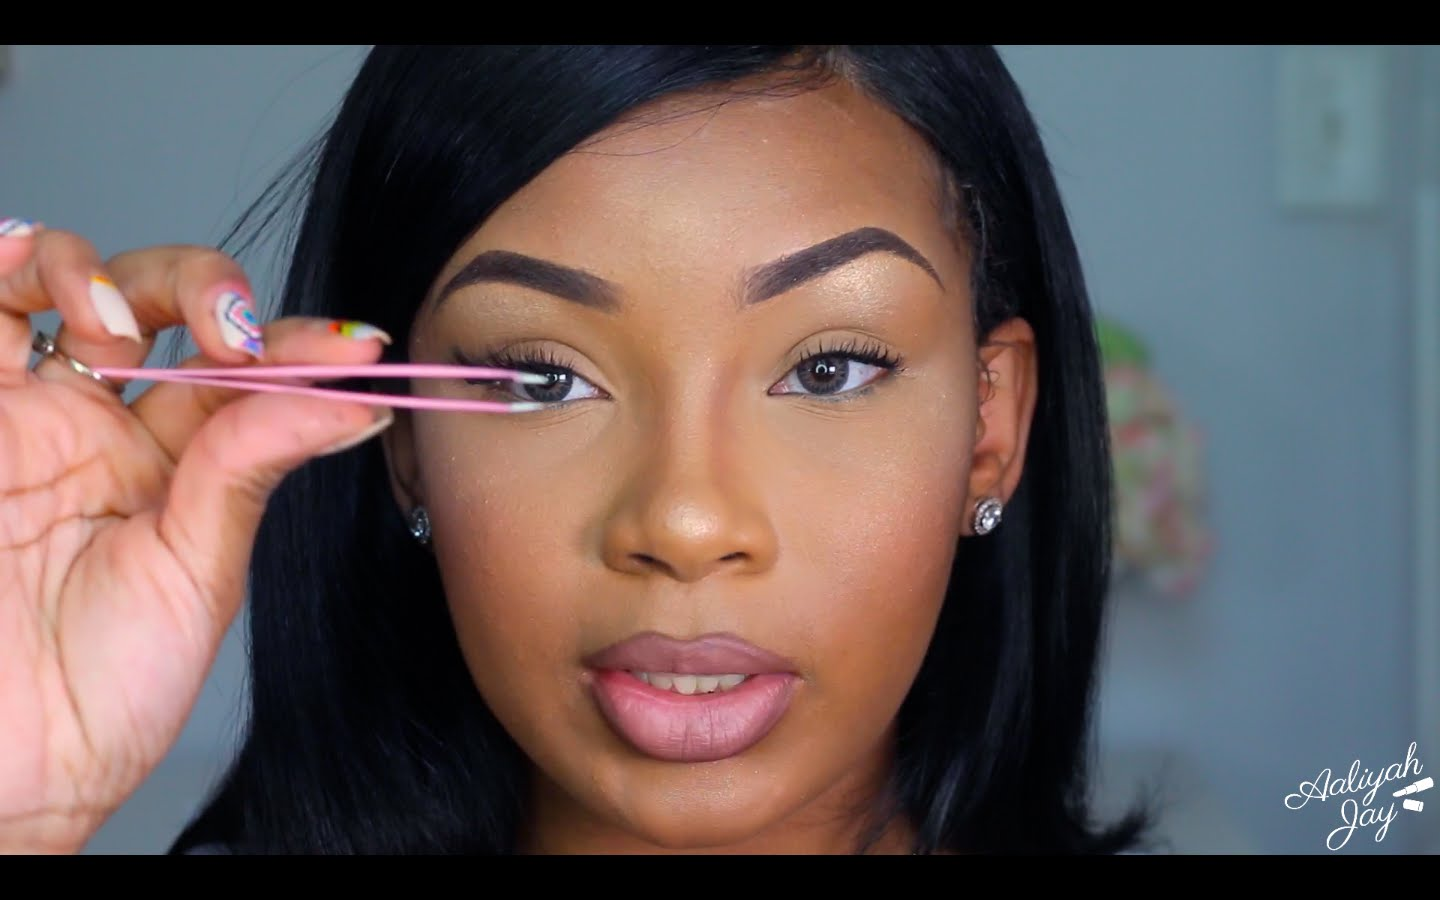 Watch How To Apply False Eyelashes Quickly And Easily video